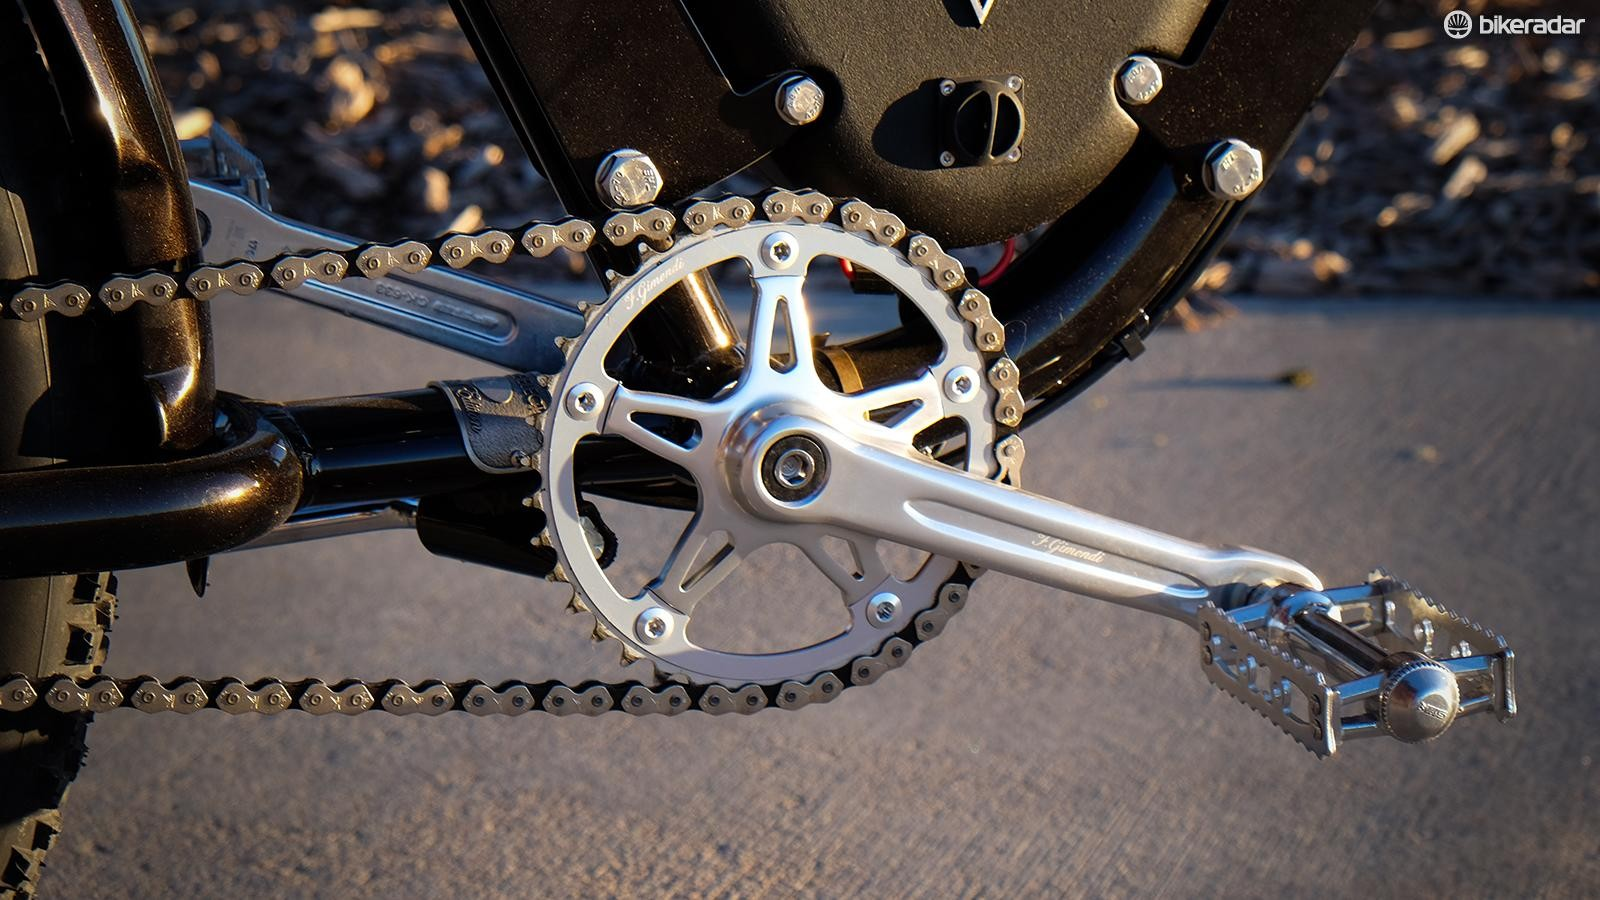 The singlespeed drivetrain is a vestige of its pedal-powered past